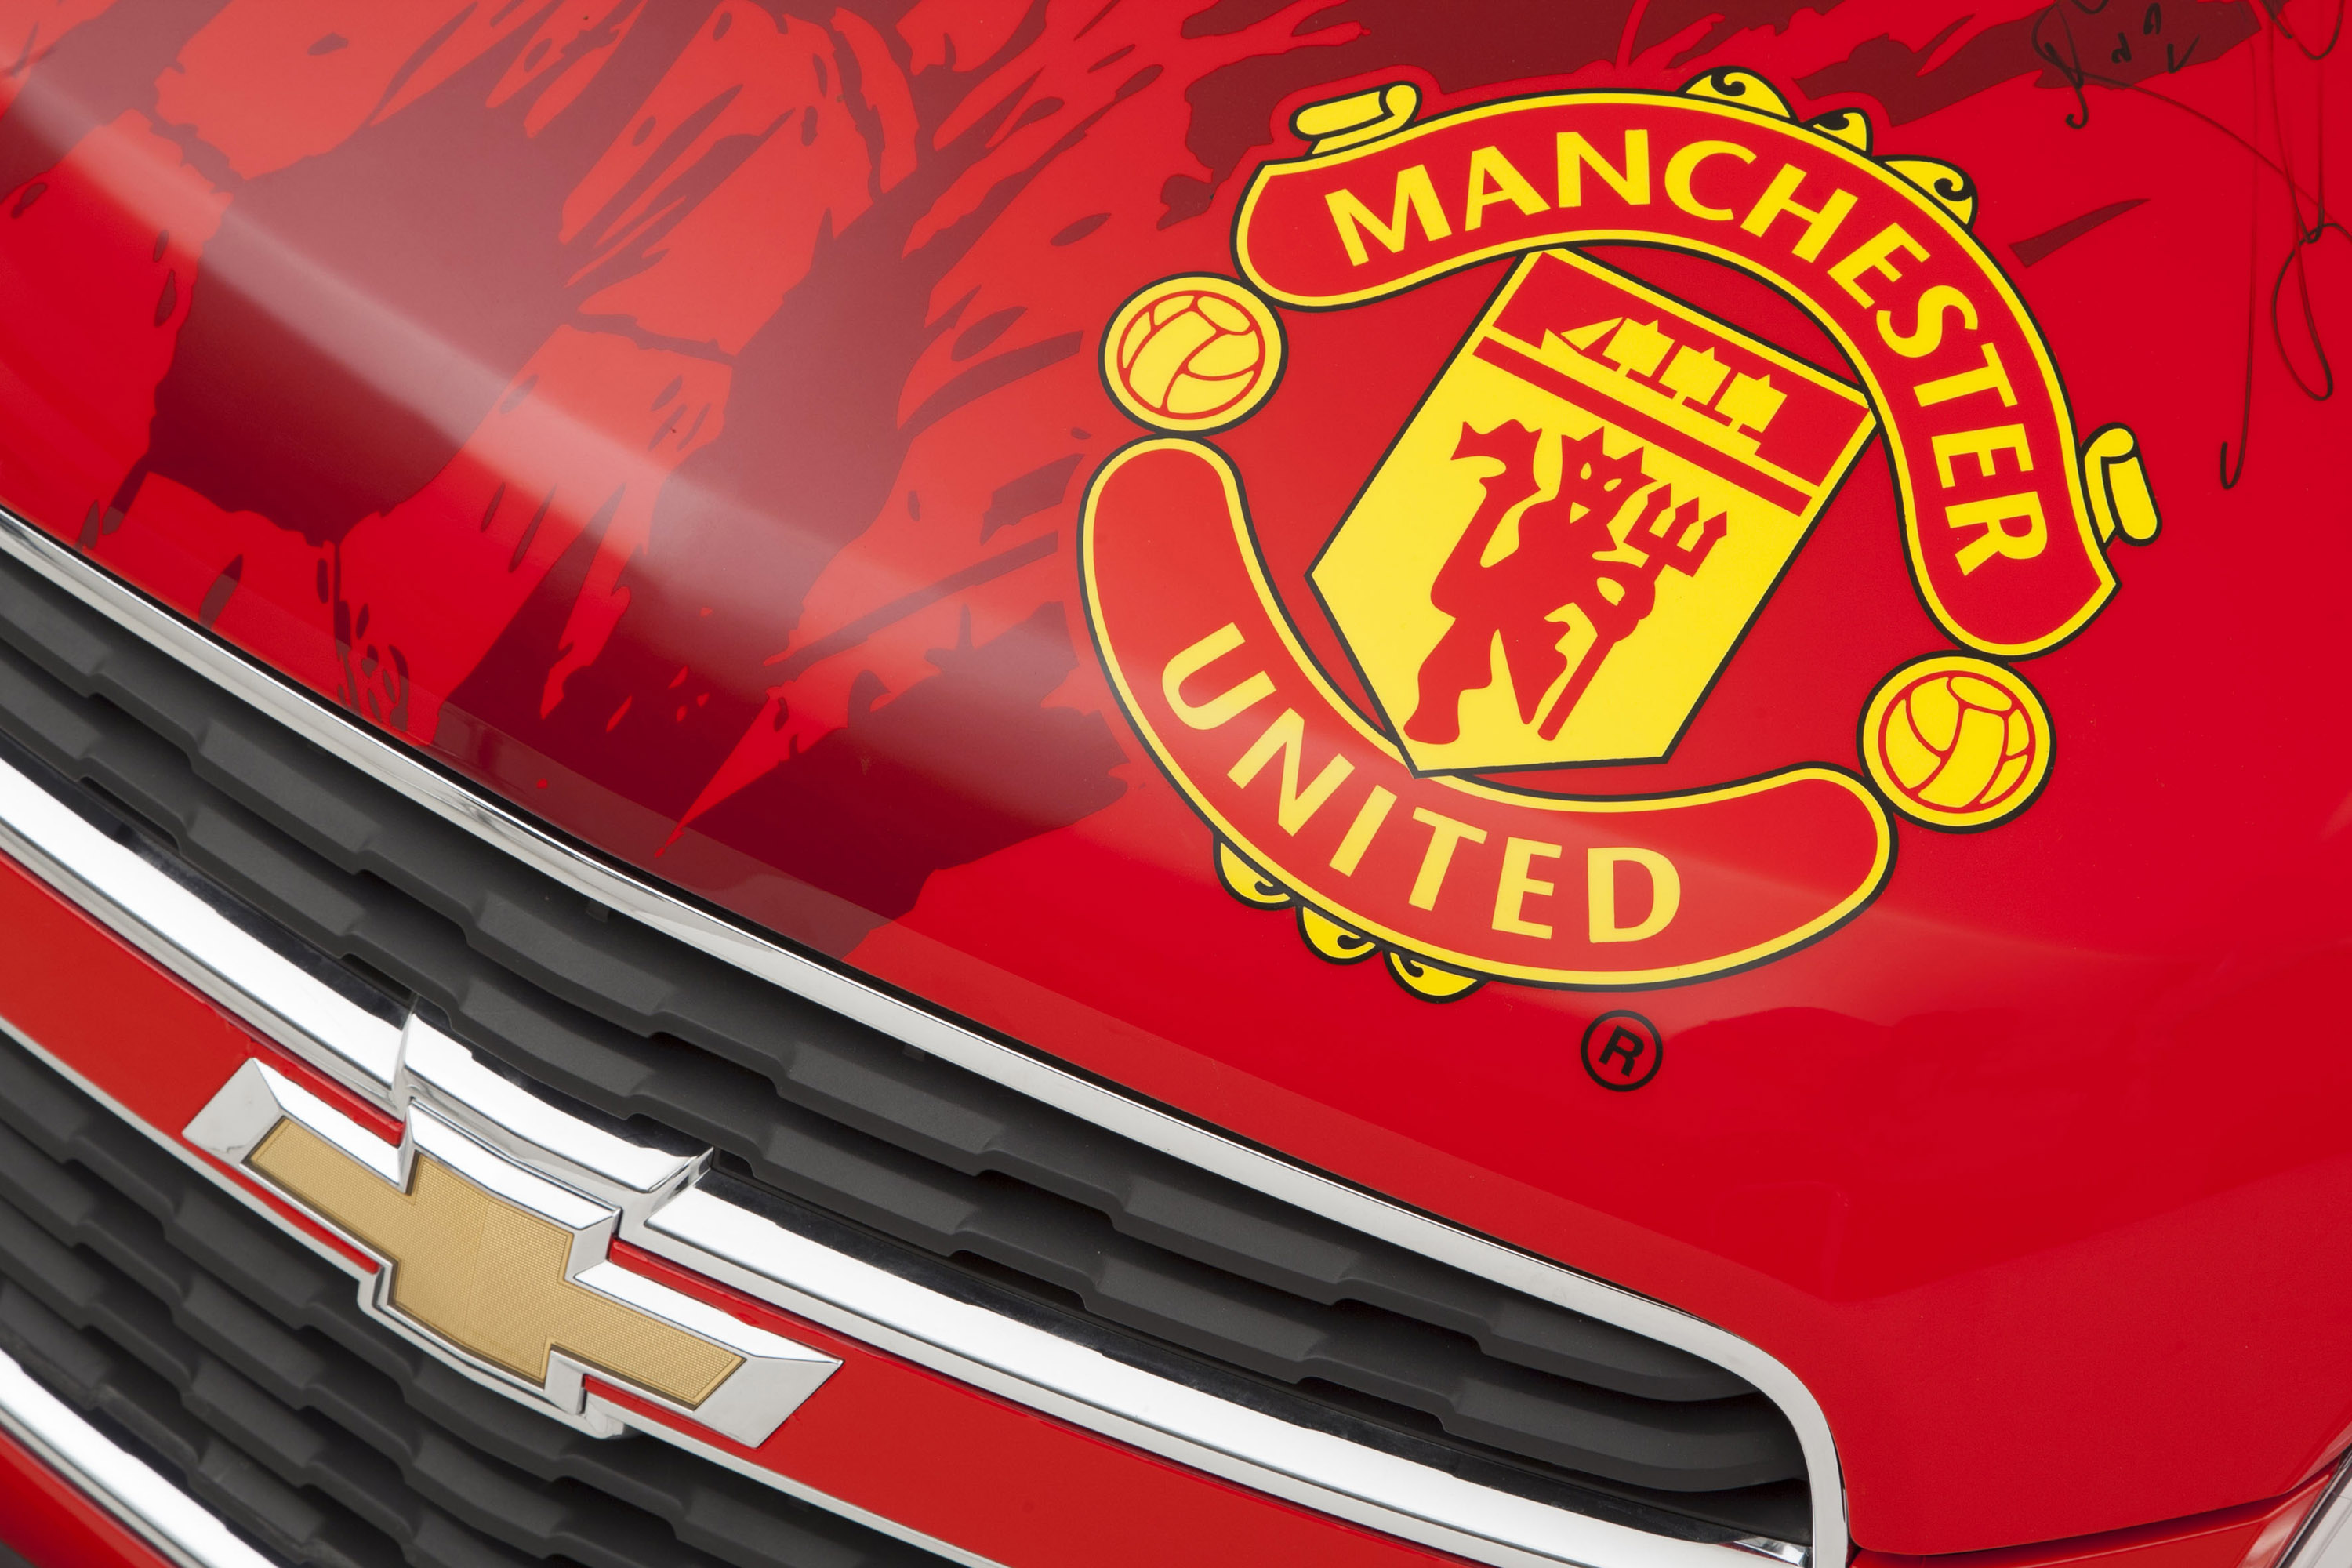 Manchester United Chevrolet Trax Picture 90698